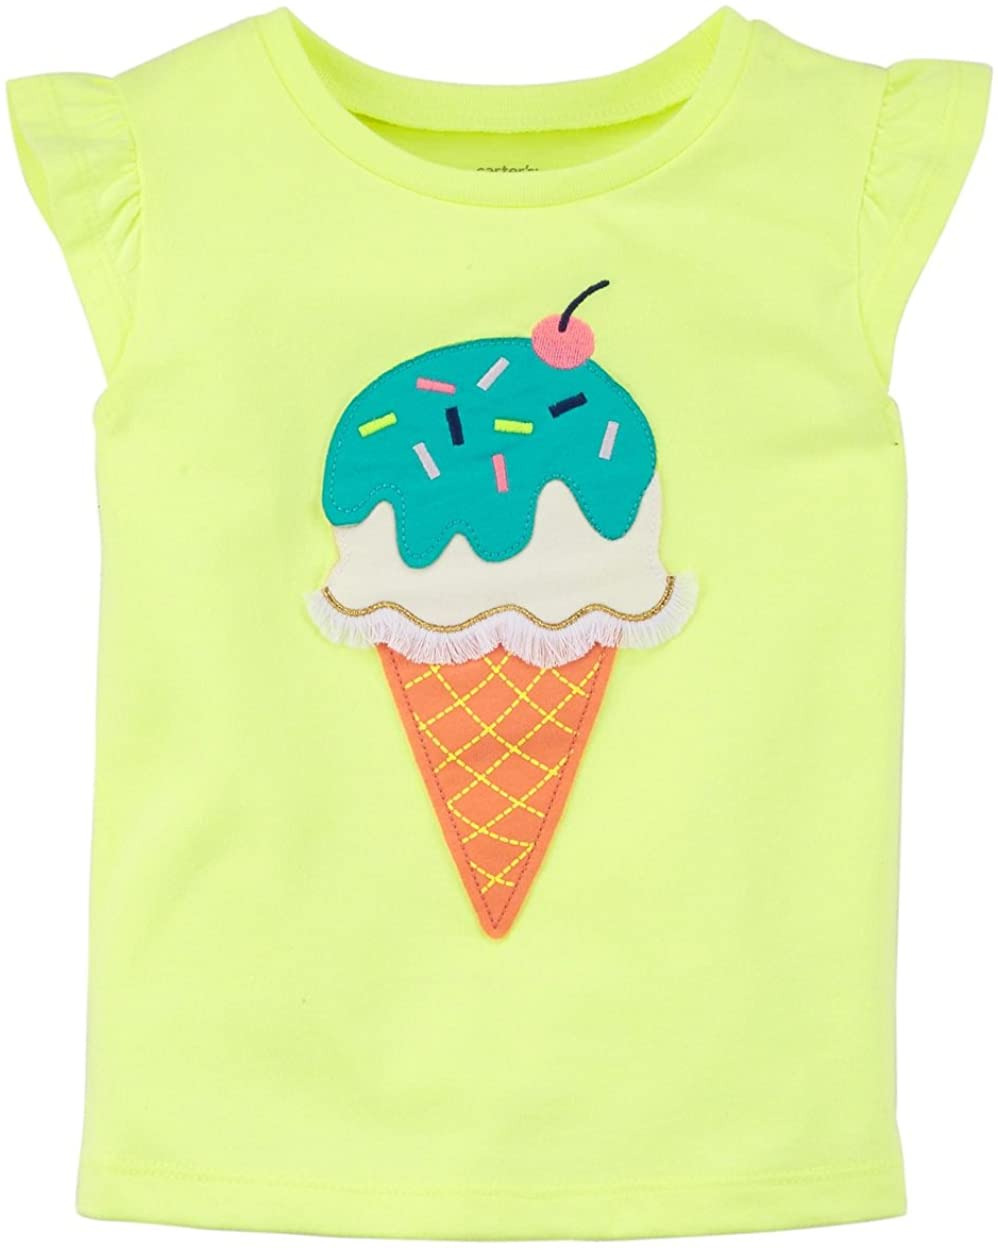 Carter's Girls' 2T-8 Flutter Sleeve Tees (Miss Independent, 7) (Neon Yellow/Ice Cream, 4-5)